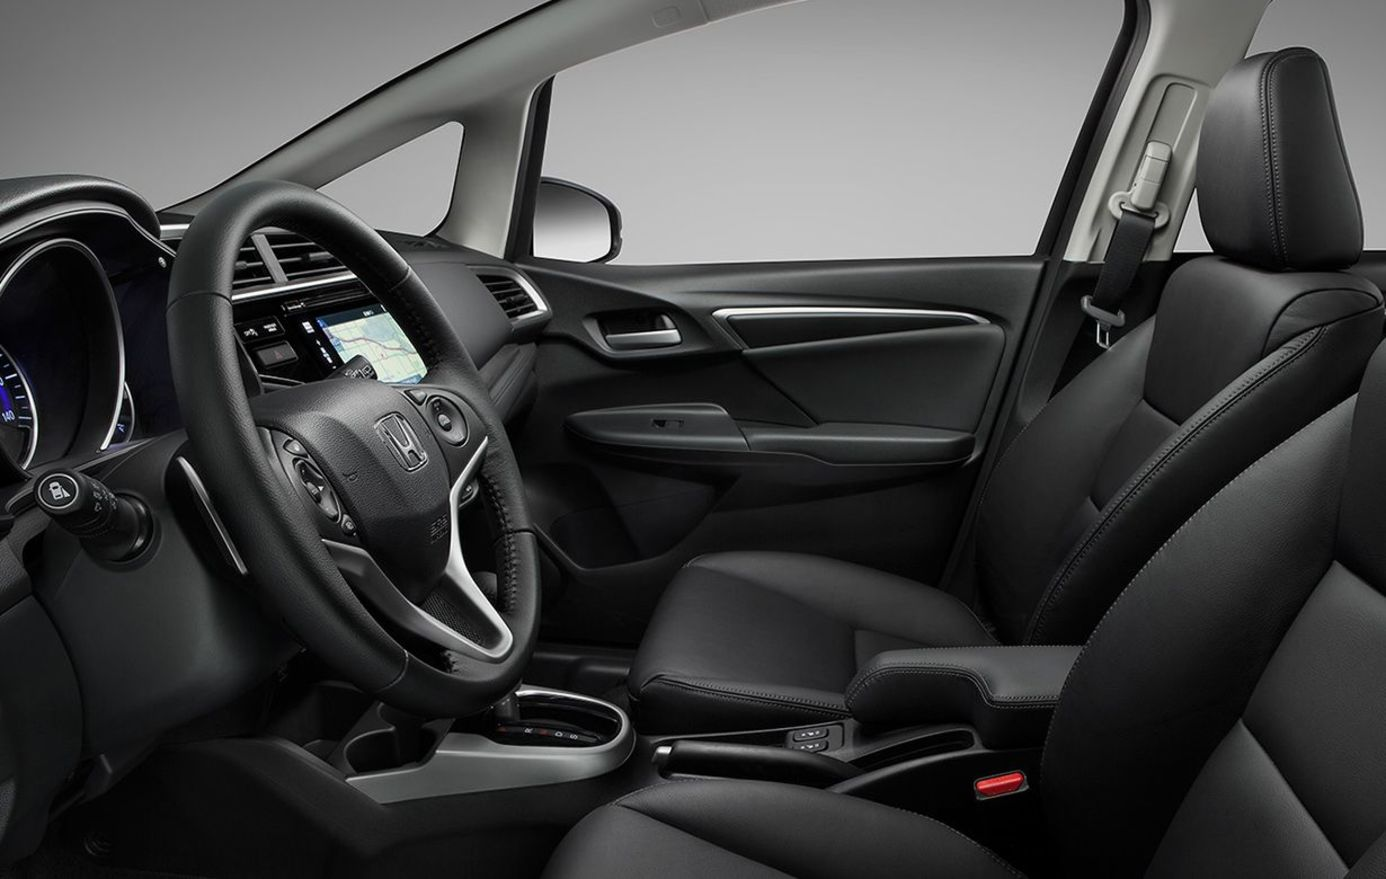 The Interior of the Honda Fit